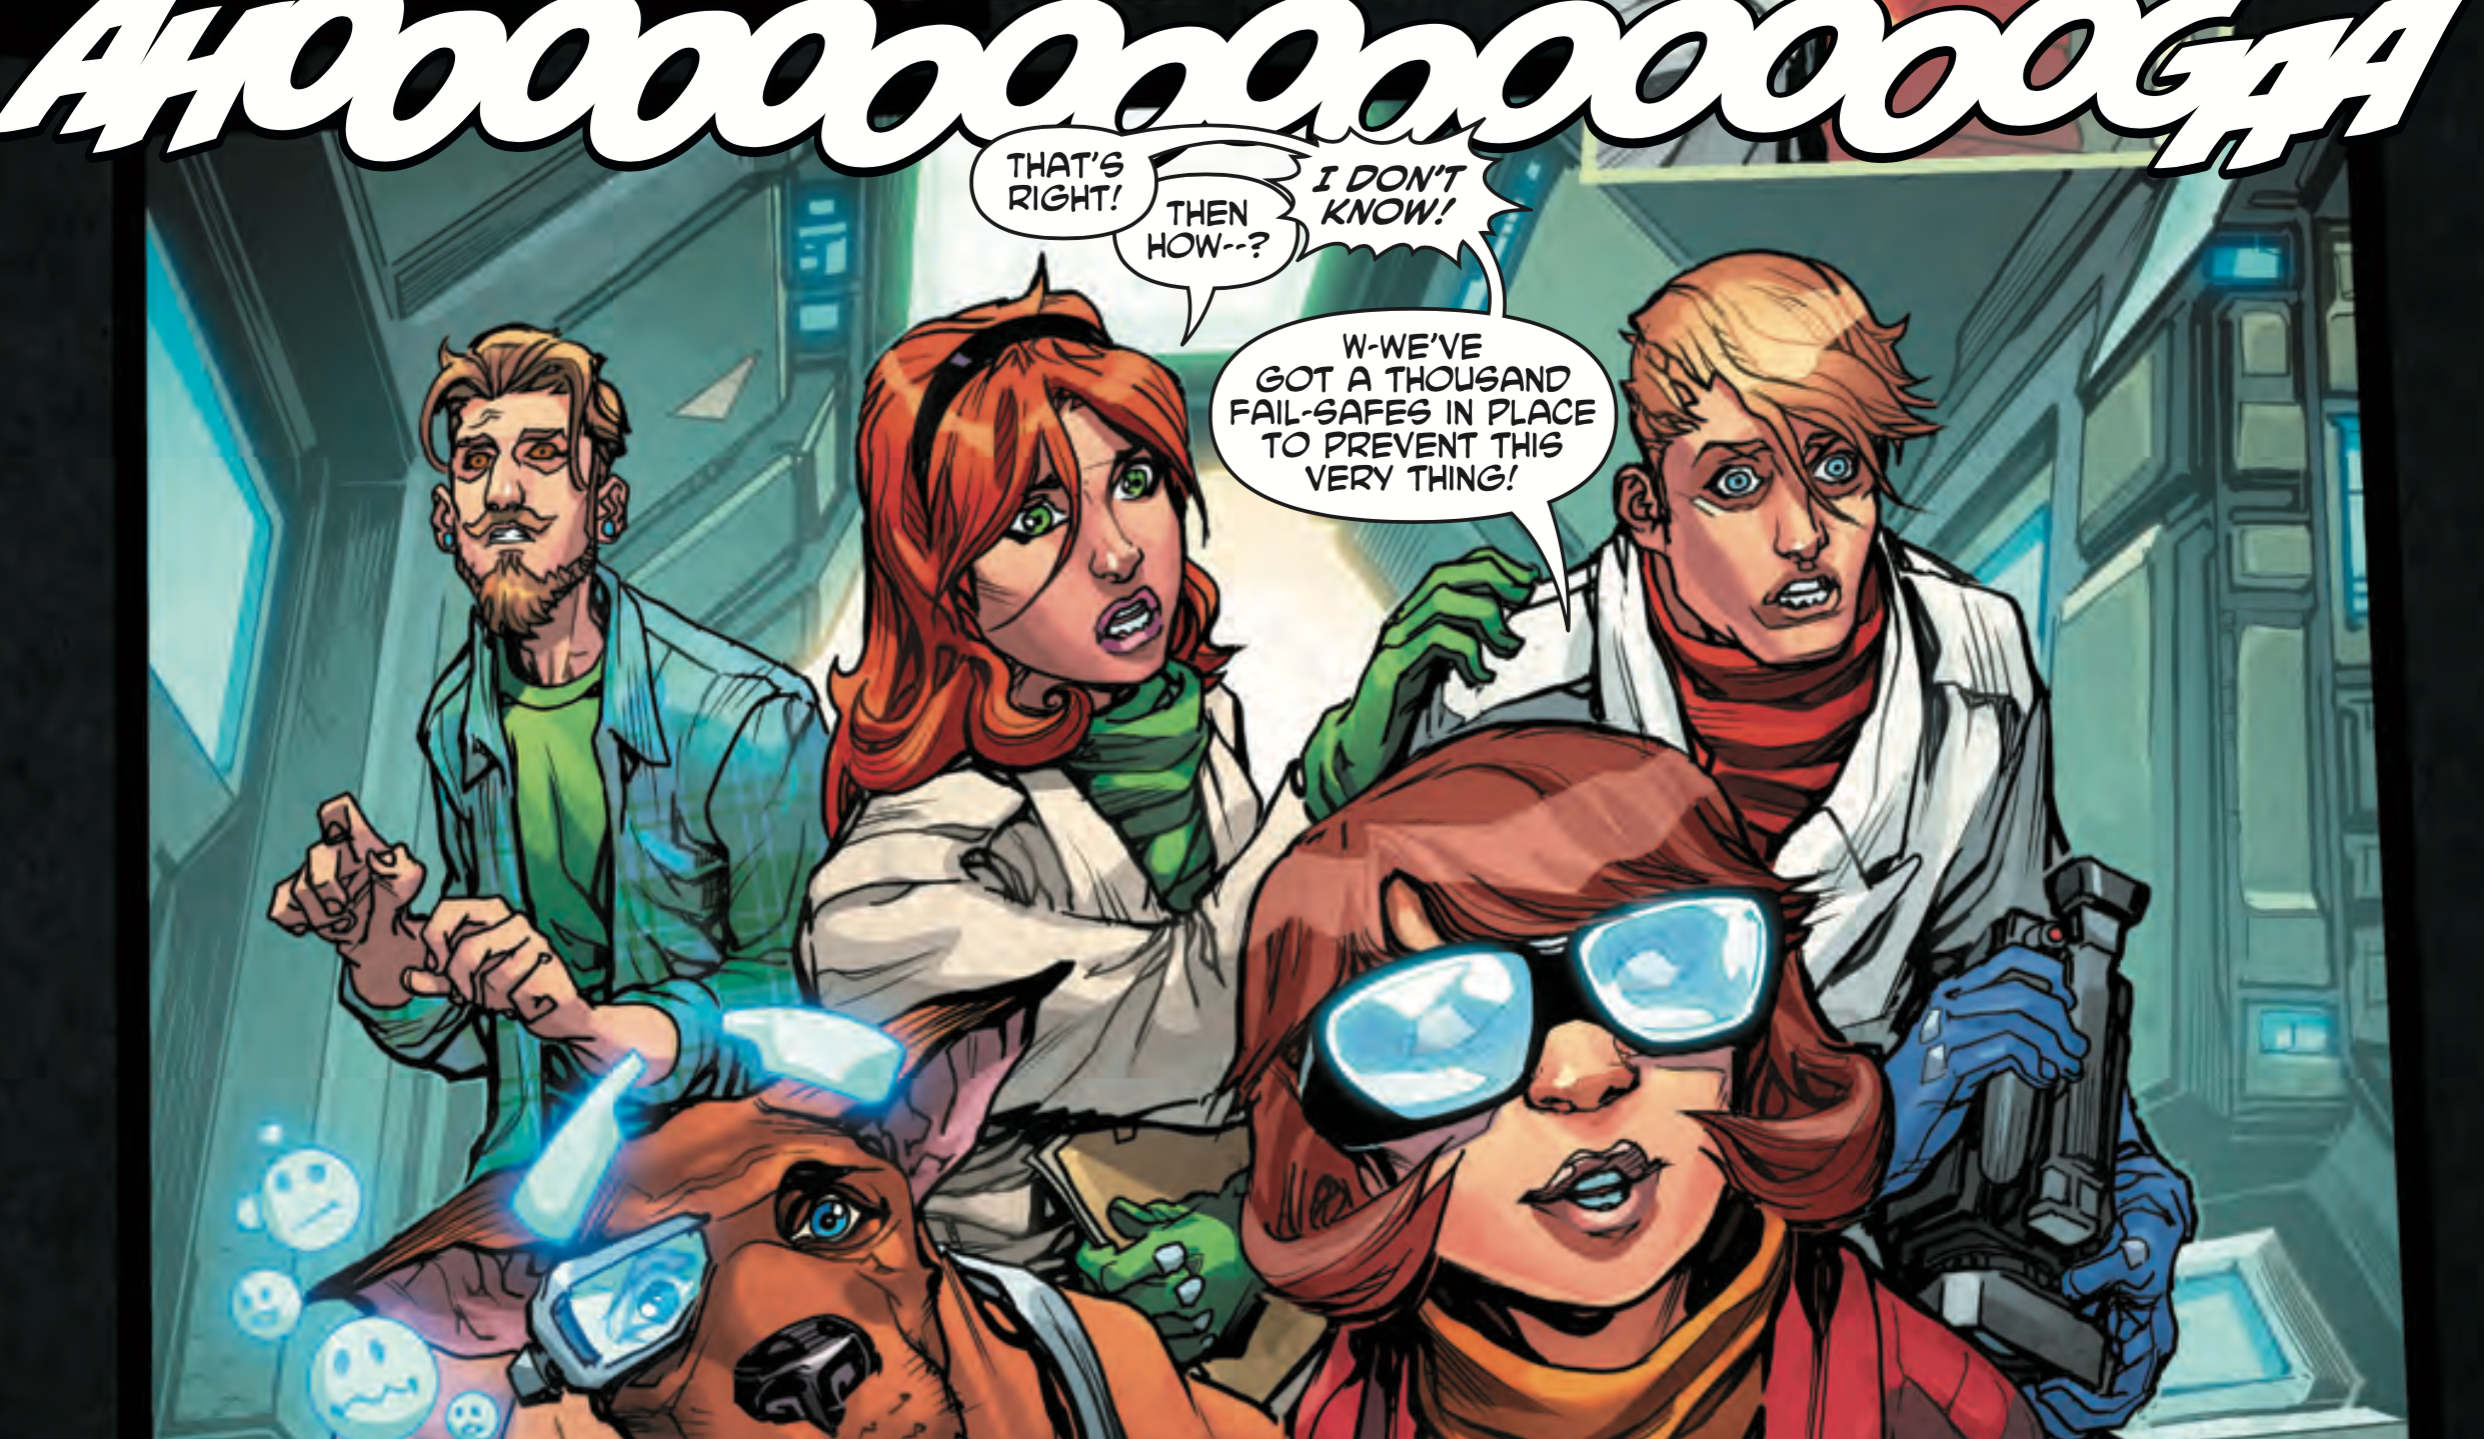 dc-comics panel-discussion scooby-apocalypse